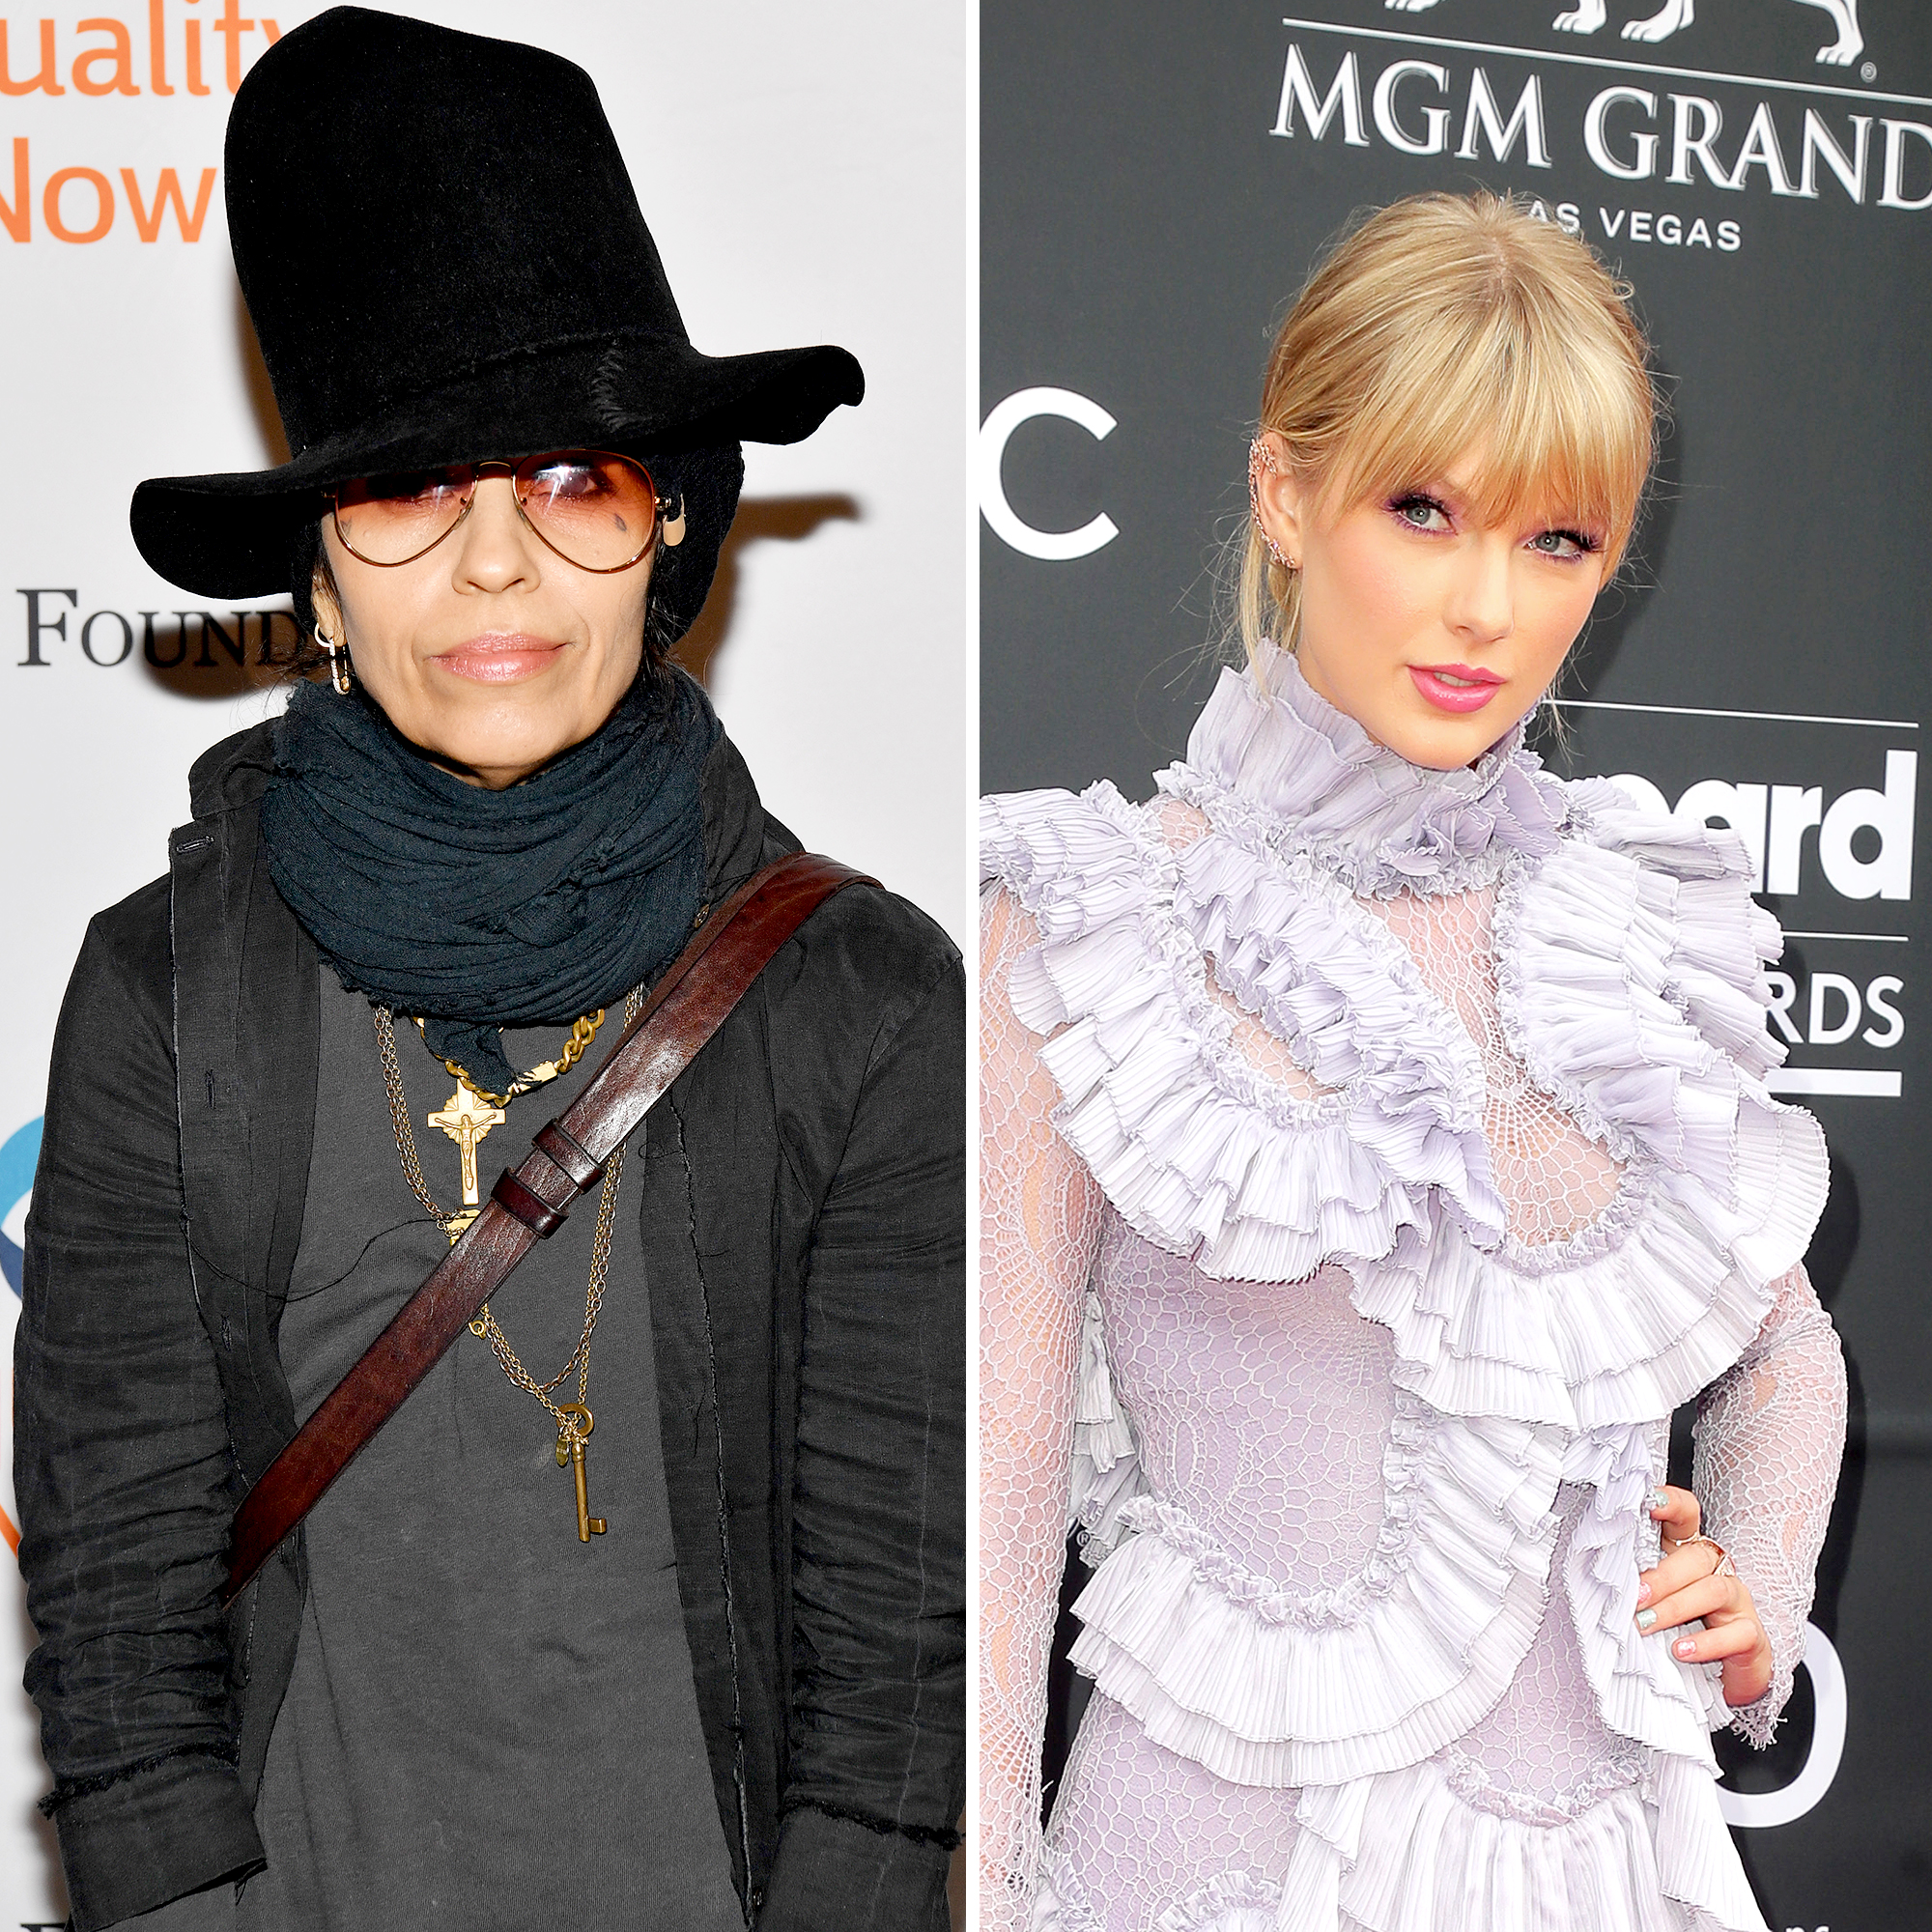 Linda-Perry-Taylor-Swift's-Debacle-With-Scooter-Braun-and-Scott-Borchetta